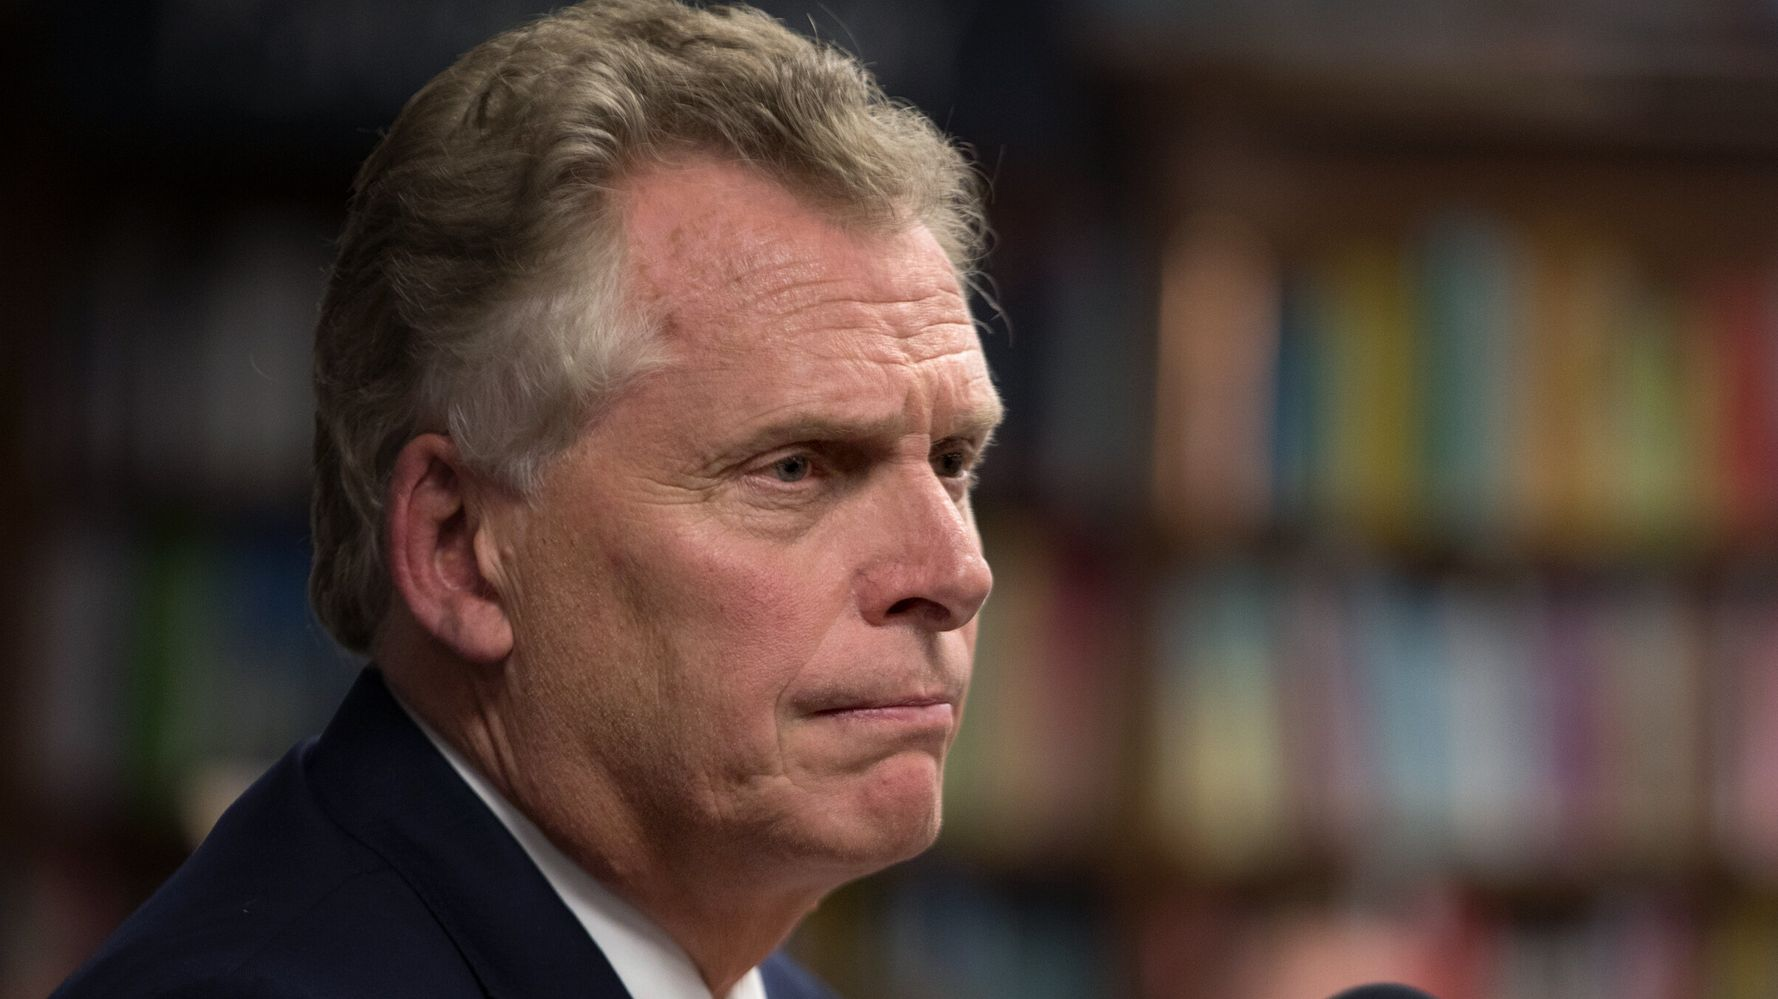 Terry McAuliffe's Record On Race Gets A Second Look In Virginia Governor's Race